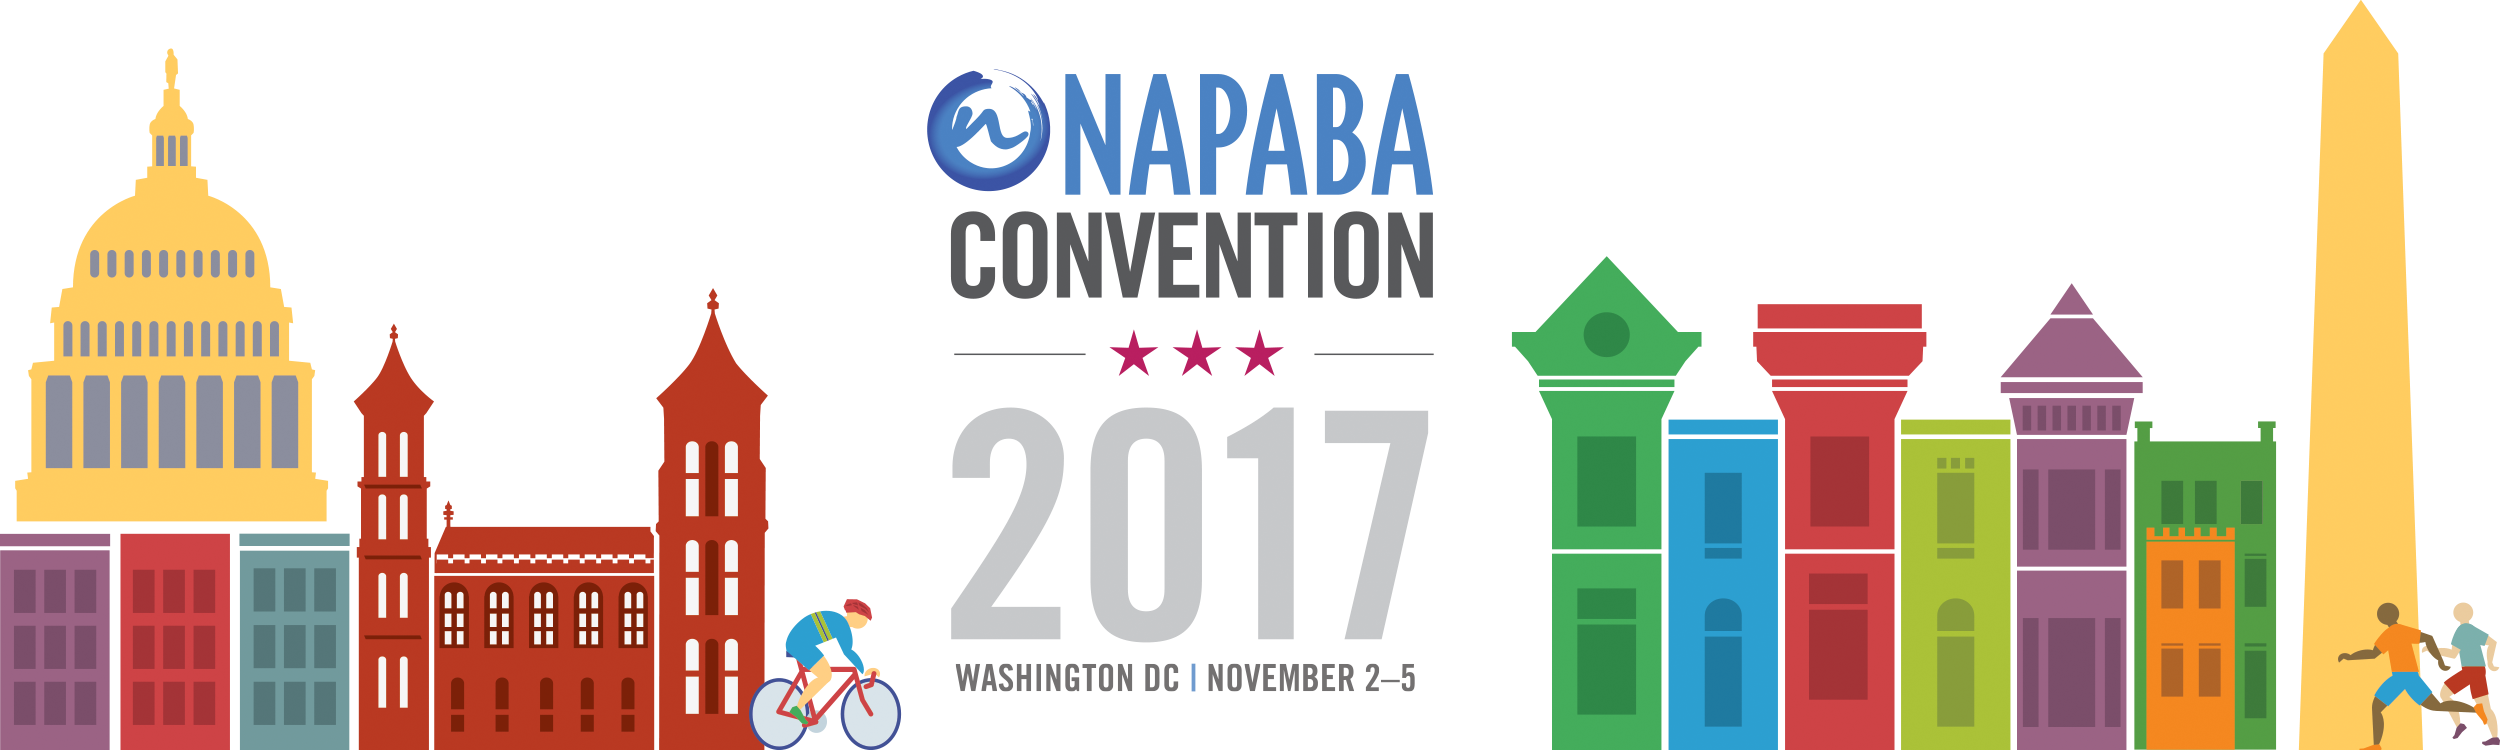 The 2017 NAPABA Convention